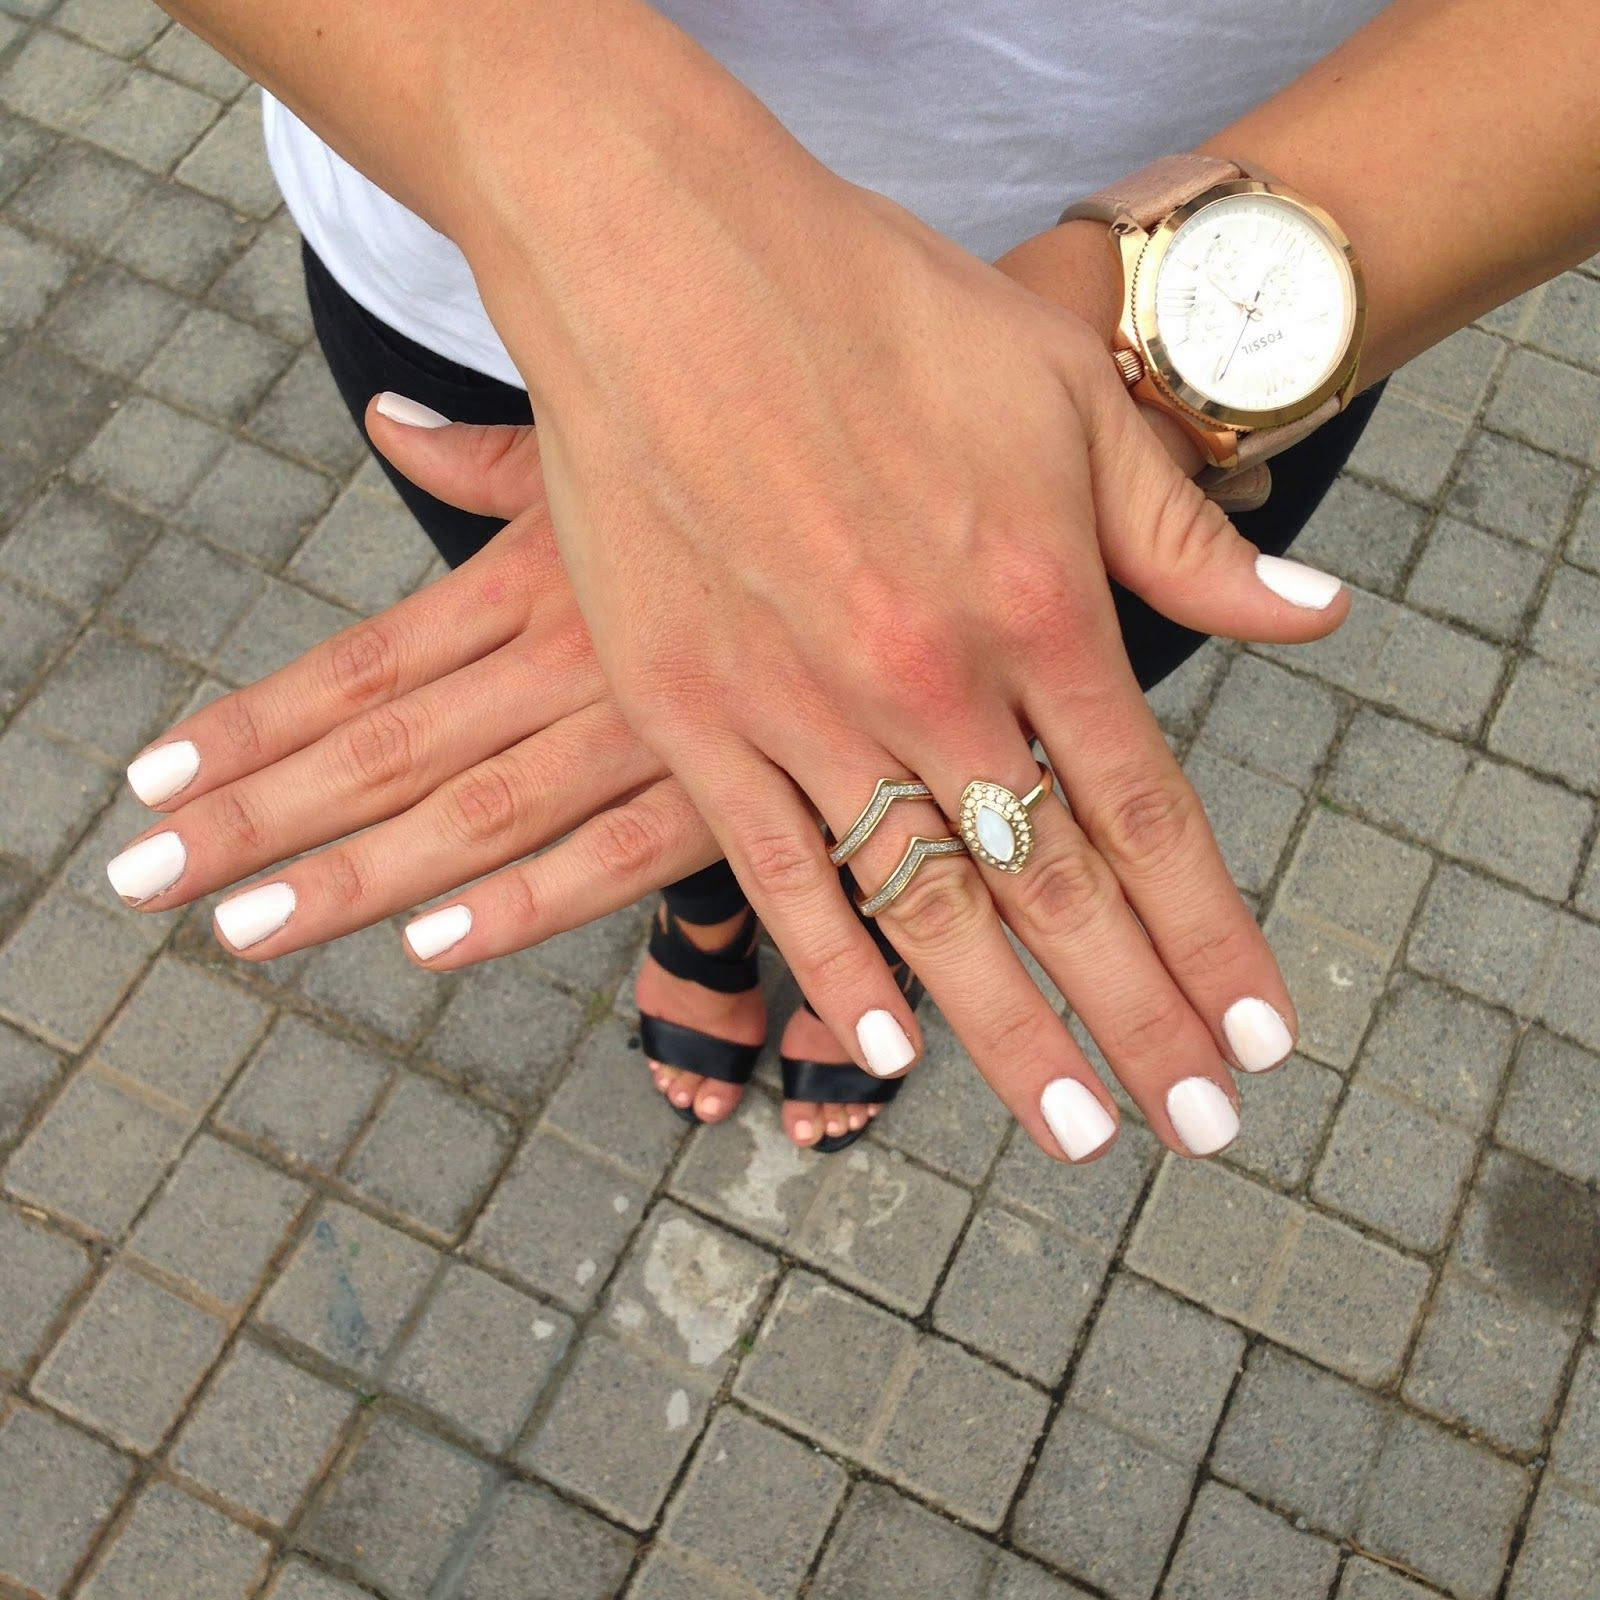 Nude white nails and gold watch.